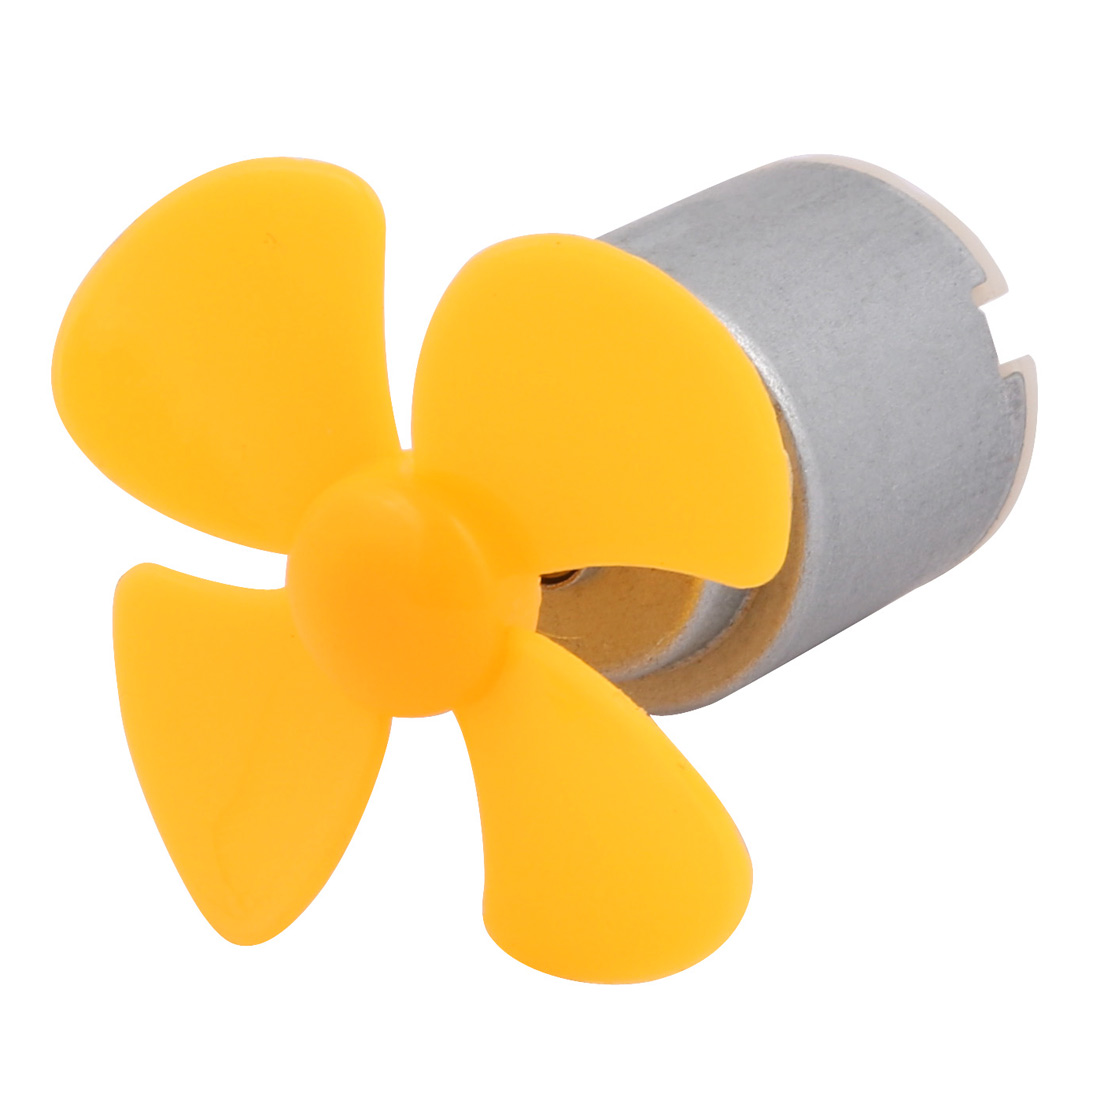 DC 3V 0.13A 6600RPM Strong Force Motor 4 Vanes 40mm Yellow Propeller for RC Aircraft